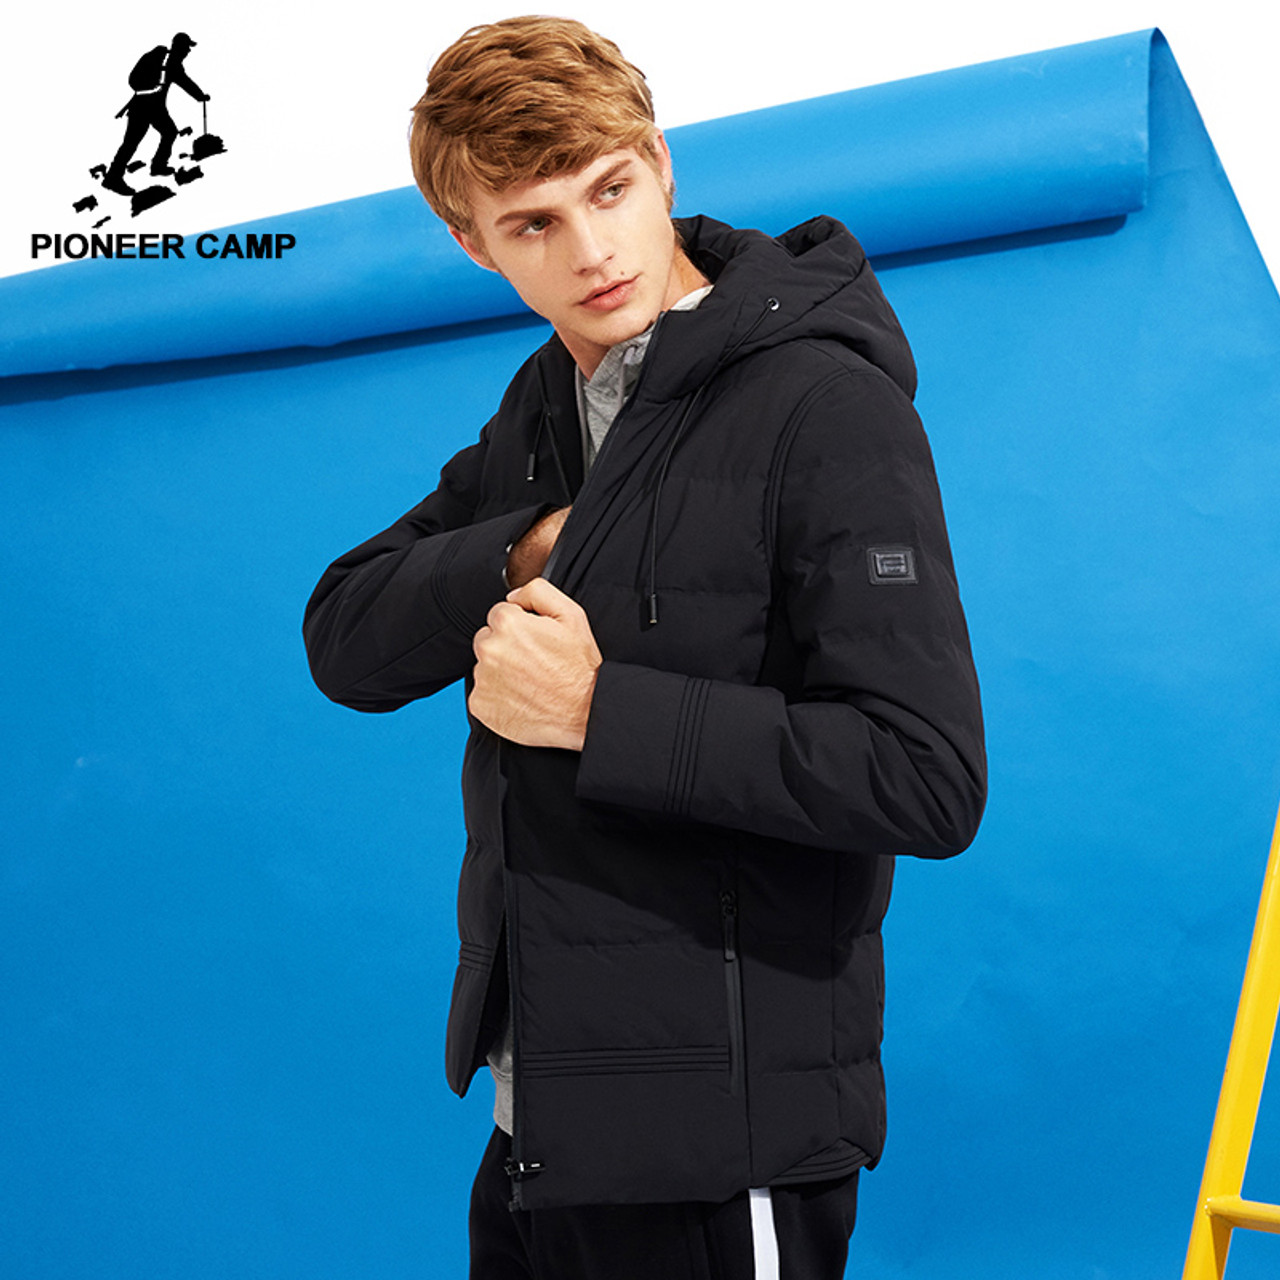 8ae168d081 Pioneer Camp new thick winter jacket men brand clothing hooded warm coat  male top quality black ...